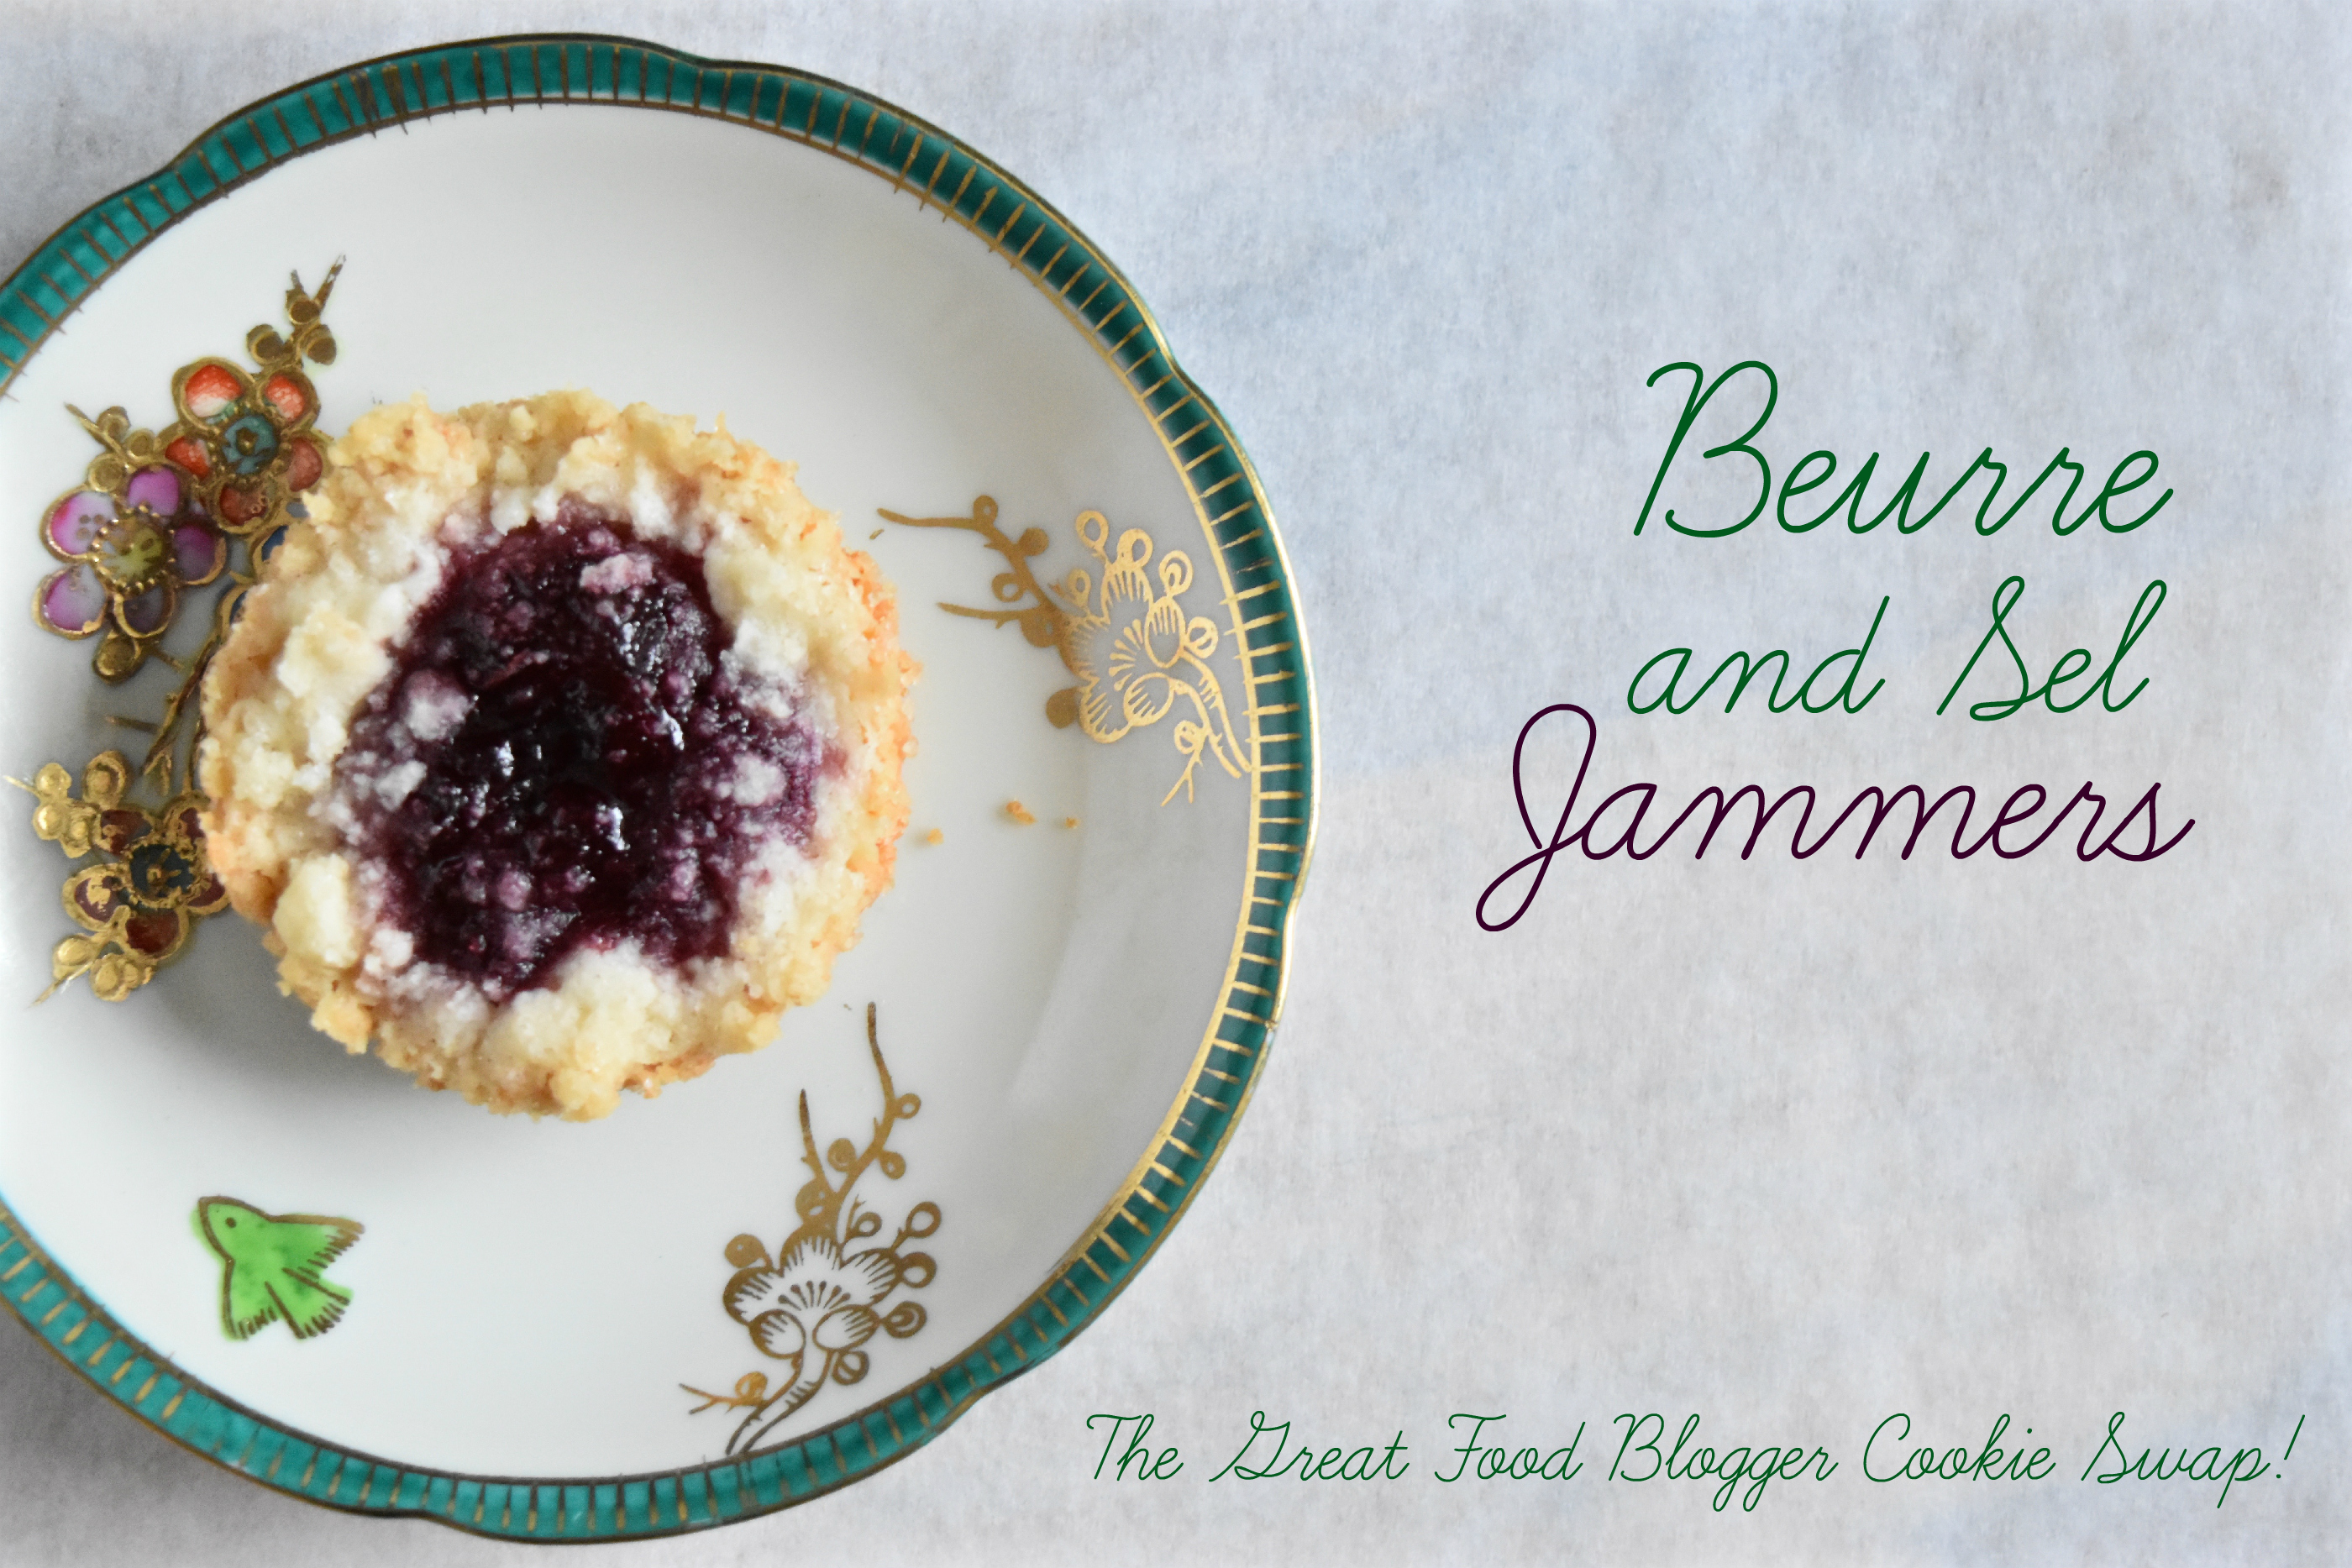 The Great Food Blogger Cookie Swap: Beurre and Sel Jammers